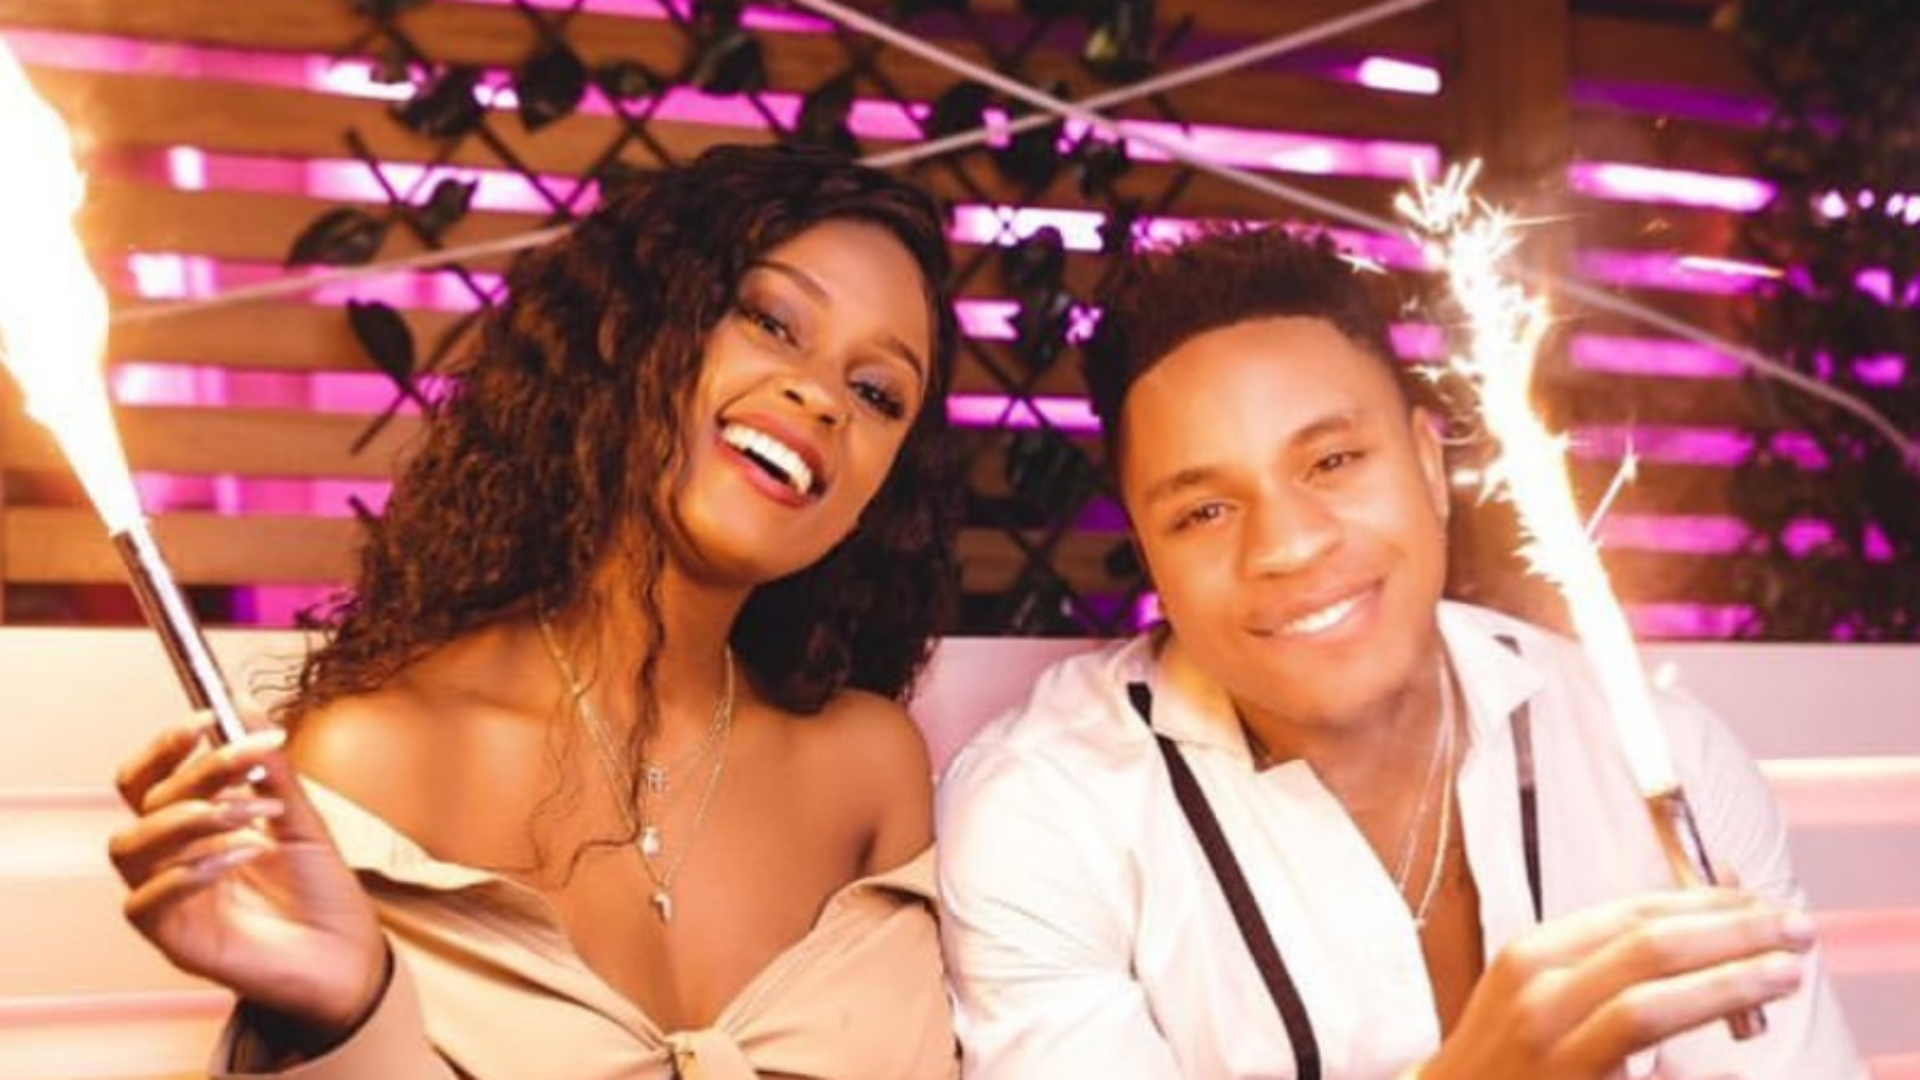 Hollywood Nigerian Actor Rotimi Proposes To His Tanzanian Girlfriend